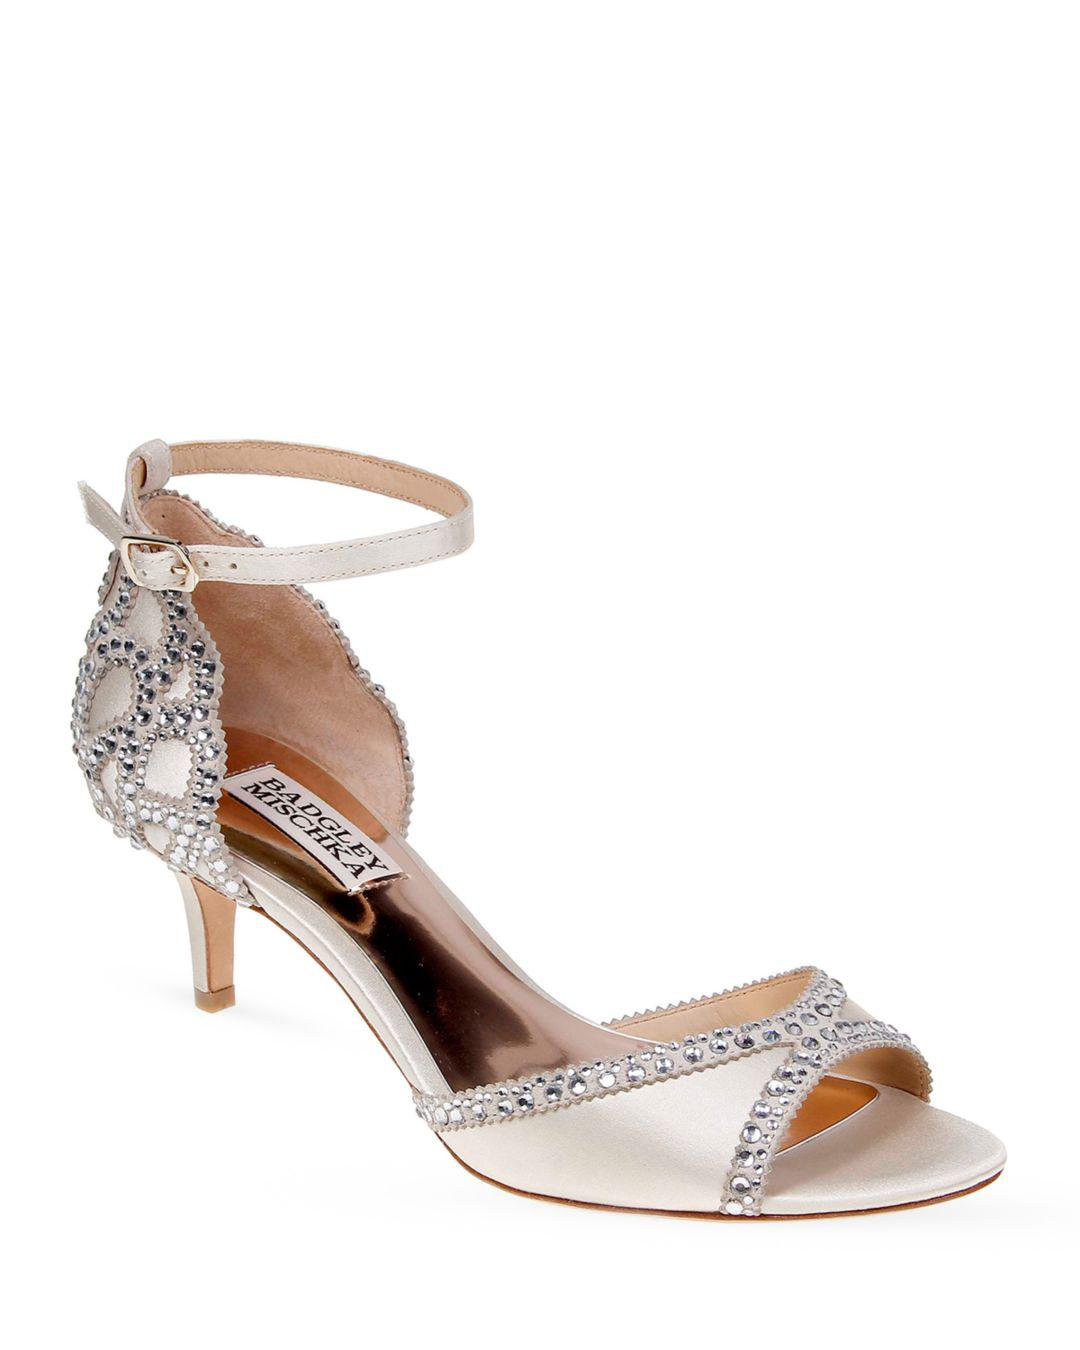 e185fb2d2ce Lyst - Badgley Mischka Gillian Embellished Ankle Strap Sandals in White